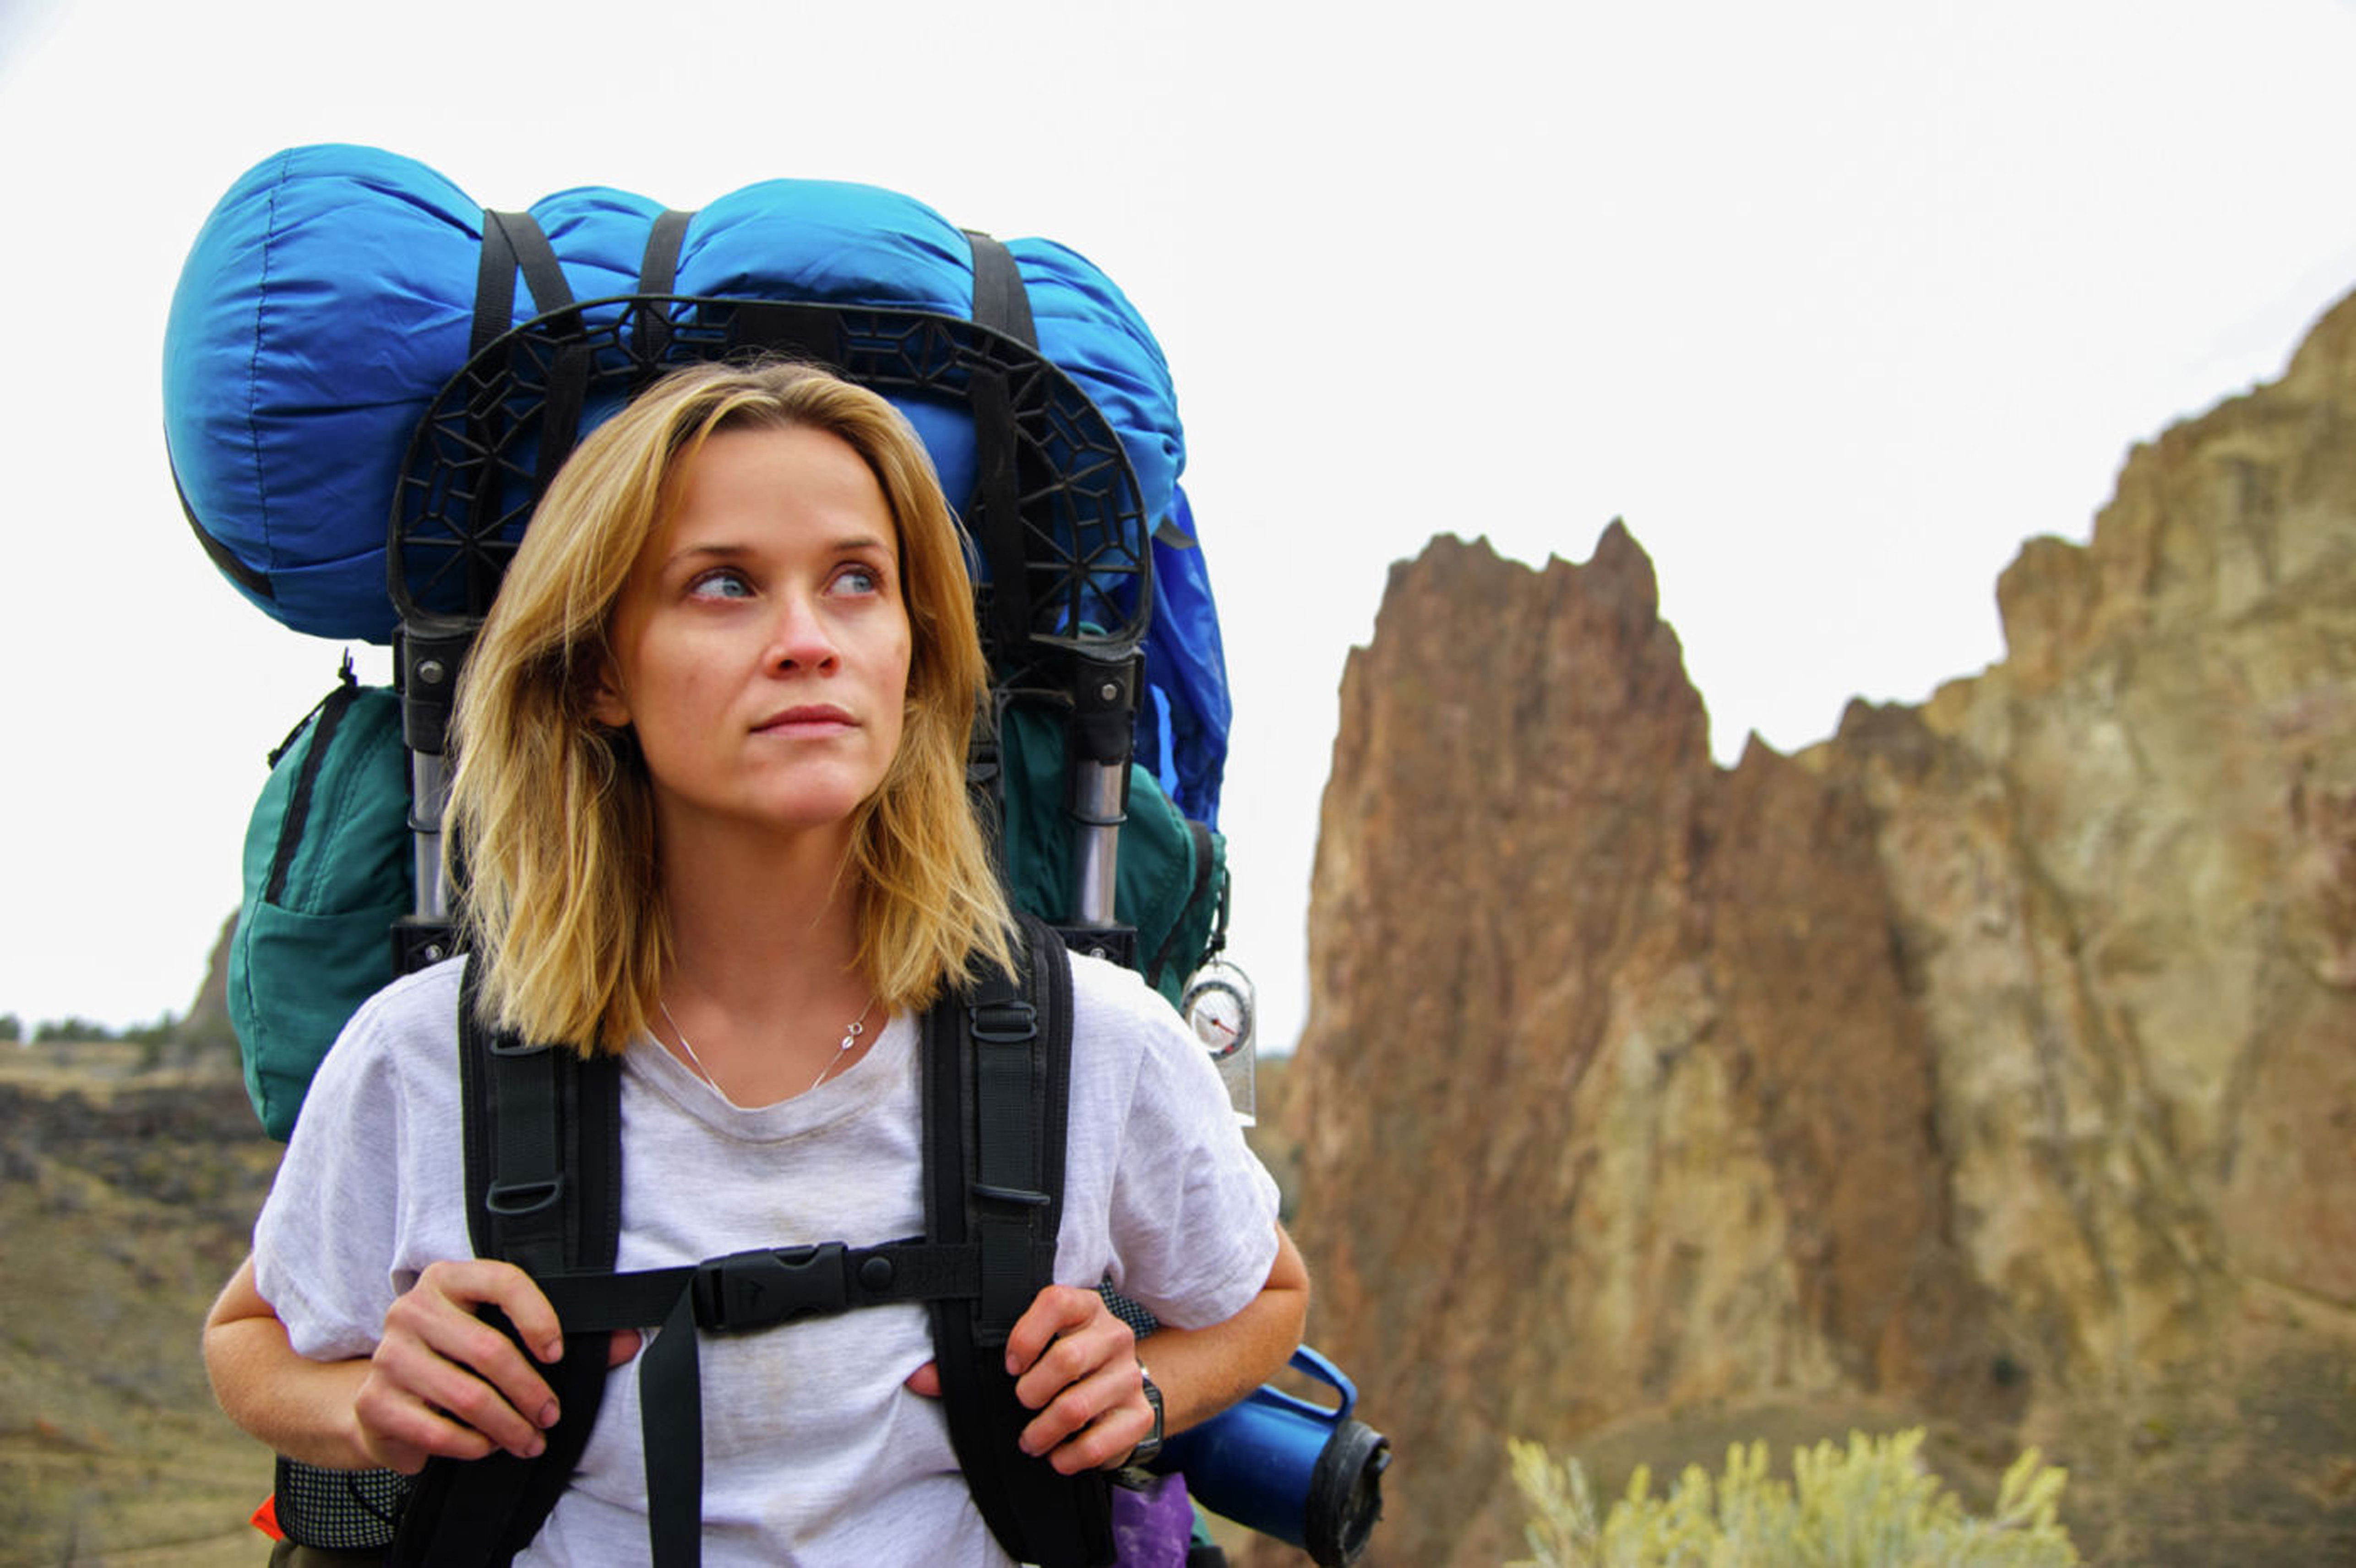 Reese Witherspoon's film production empire intertwines with book club